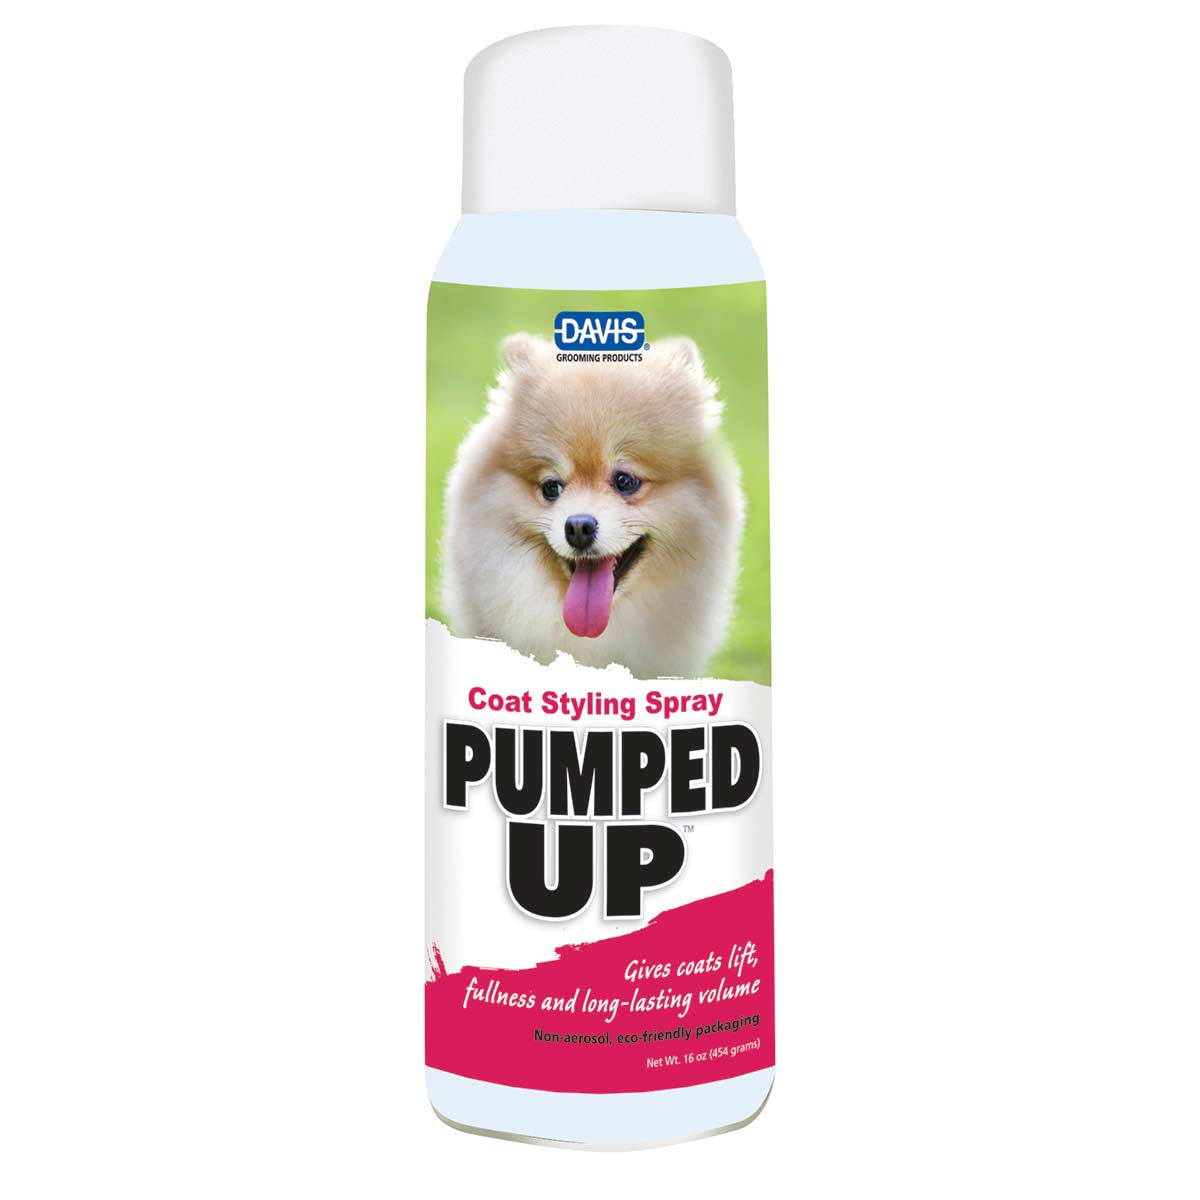 Davis PUMPED UP Coat Styling Spray 16 ounce